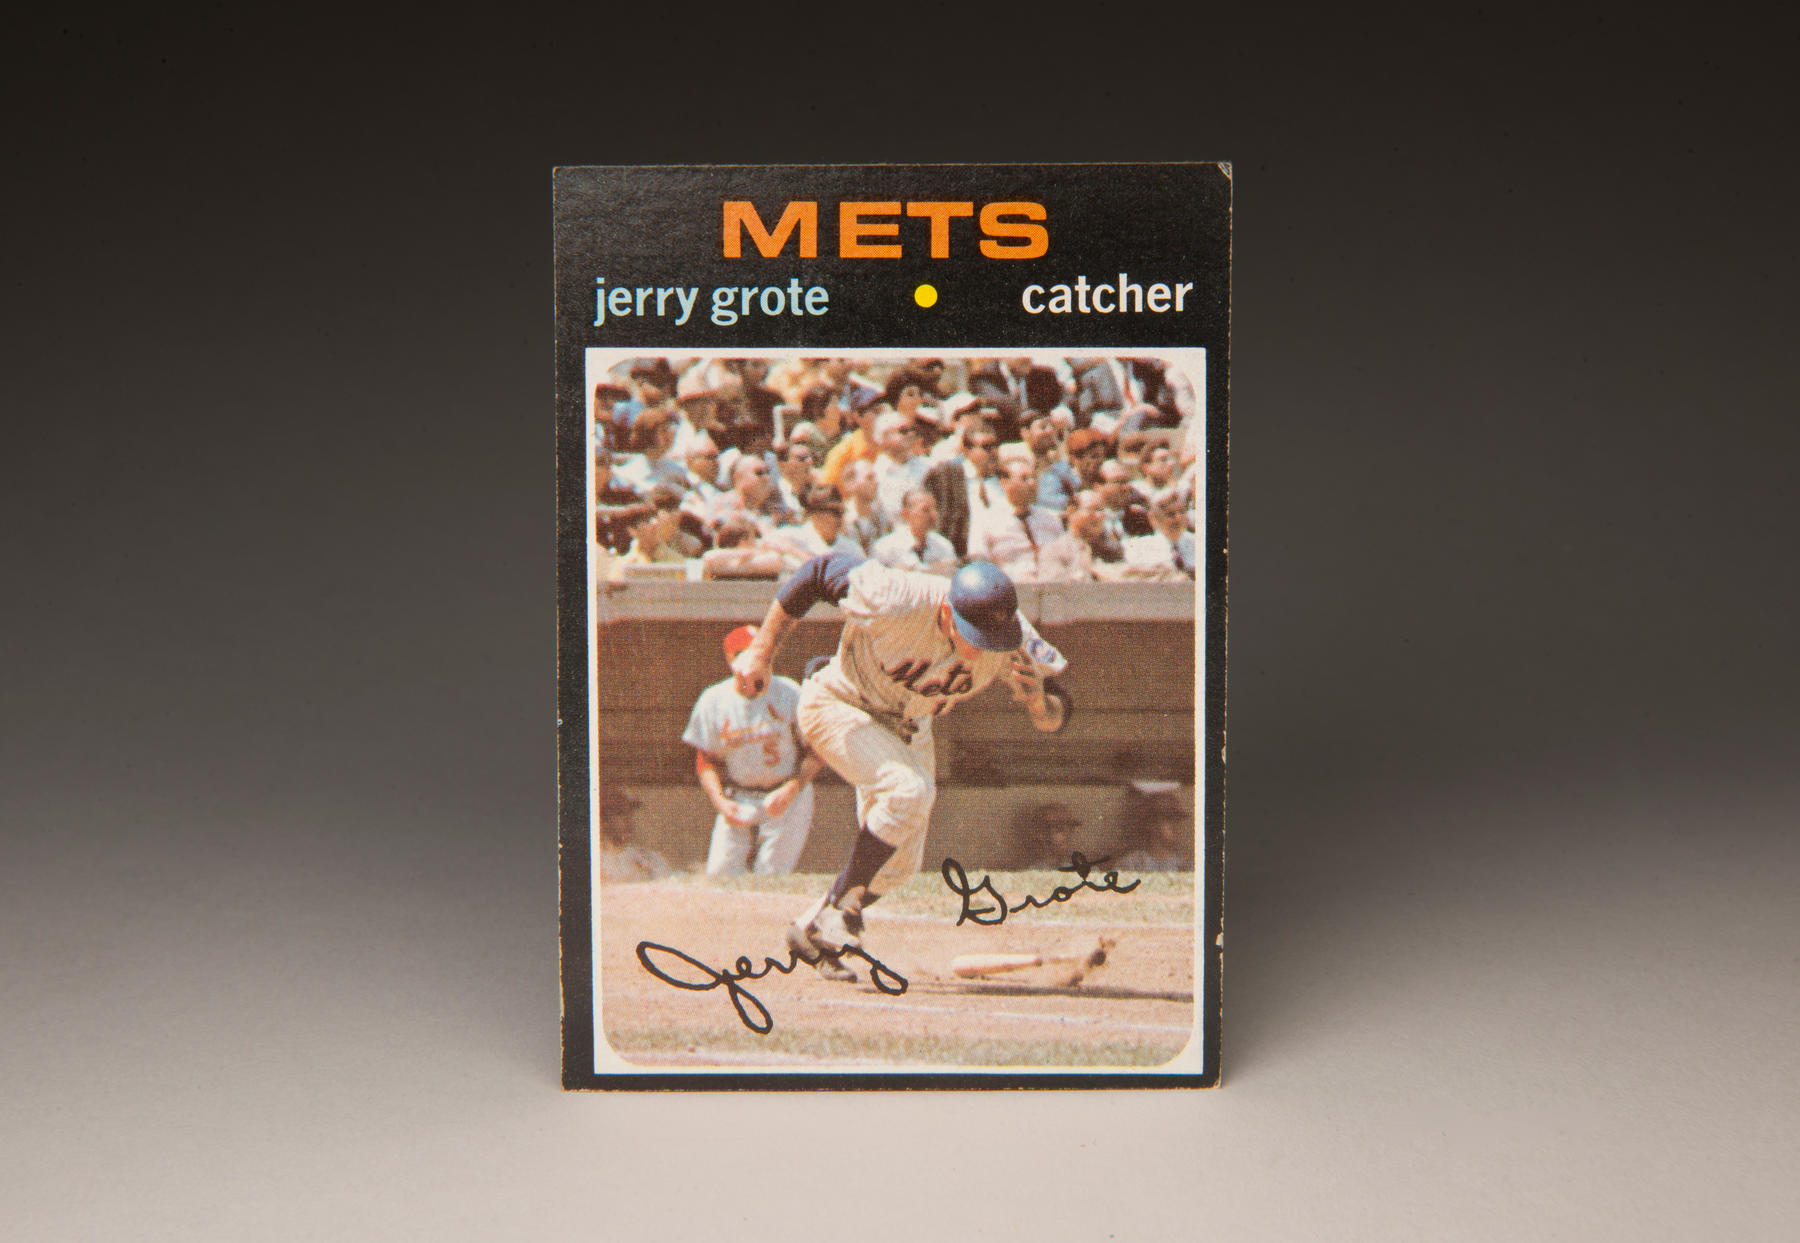 1971 Jerry Grote Topps card. (Milo Stewart, Jr. / National Baseball Hall of Fame)